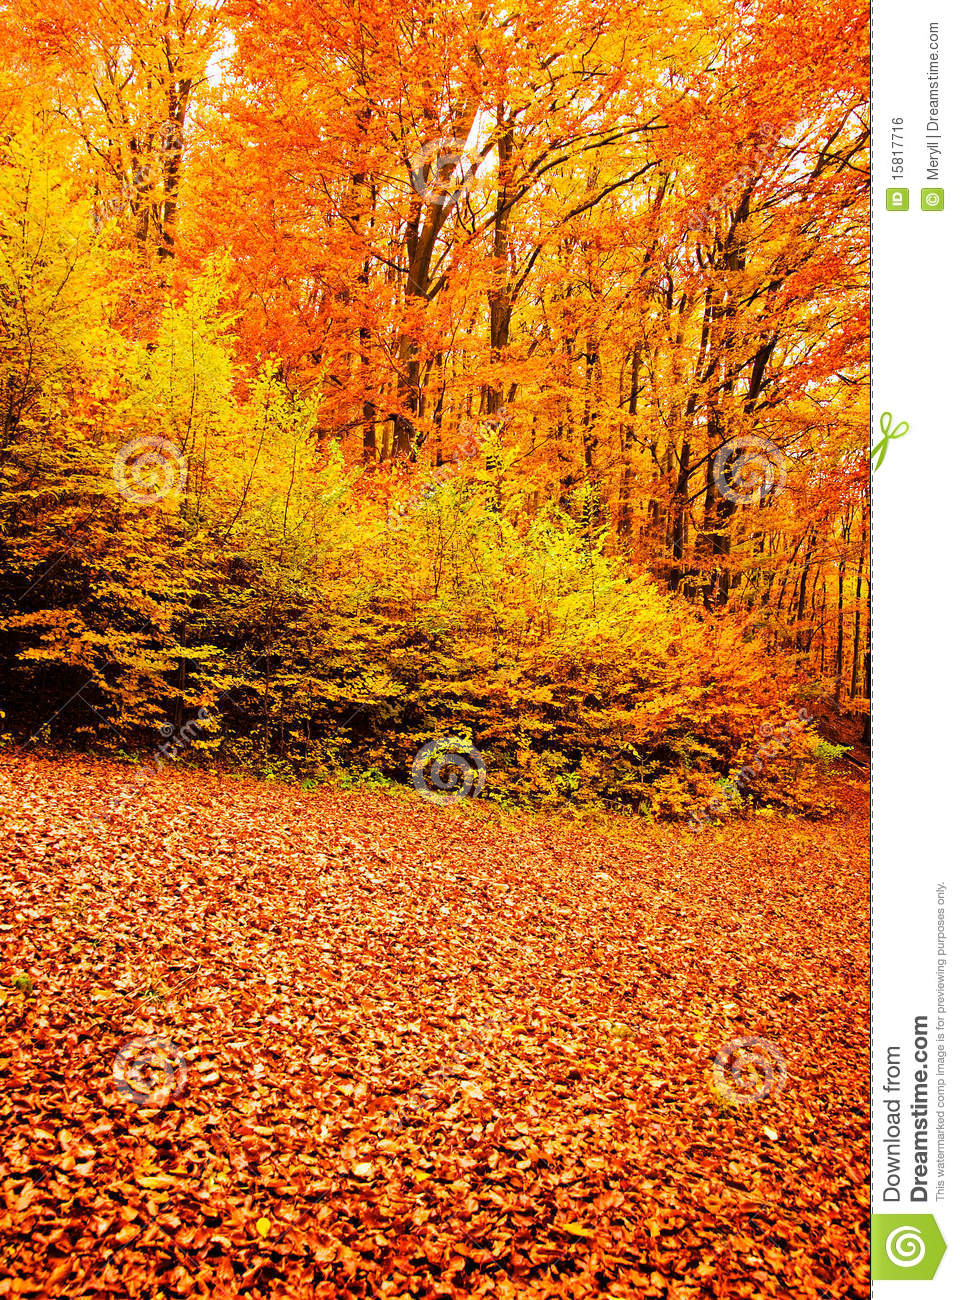 Fall Brithday Wallpaper Autumn Forest Fall Nature Royalty Free Stock Image Image